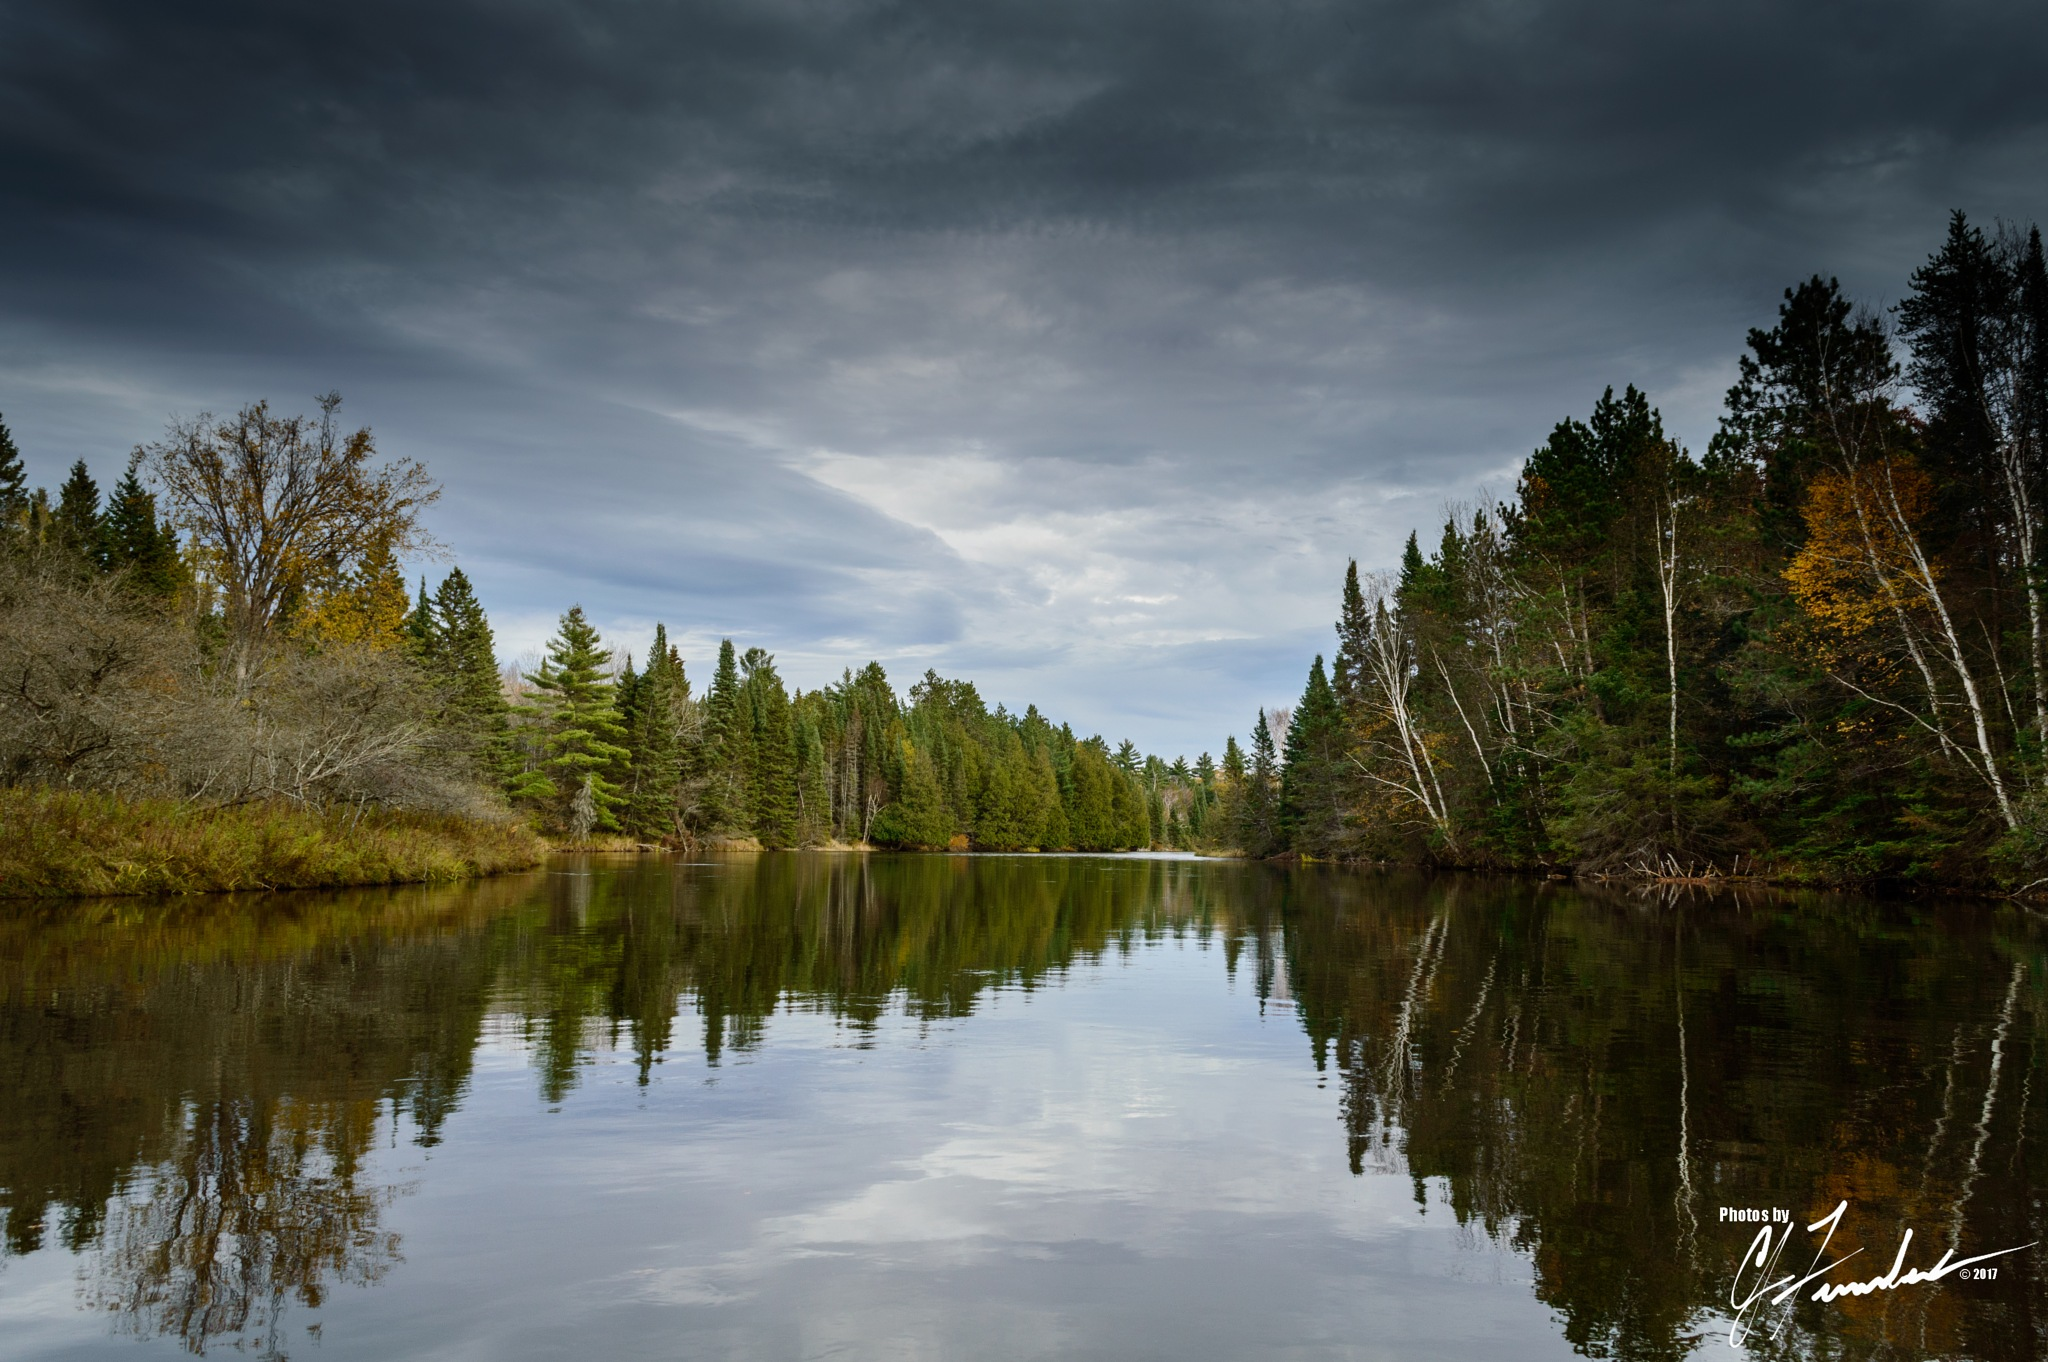 A Day on the AuSable River by CJ Fenstermaker